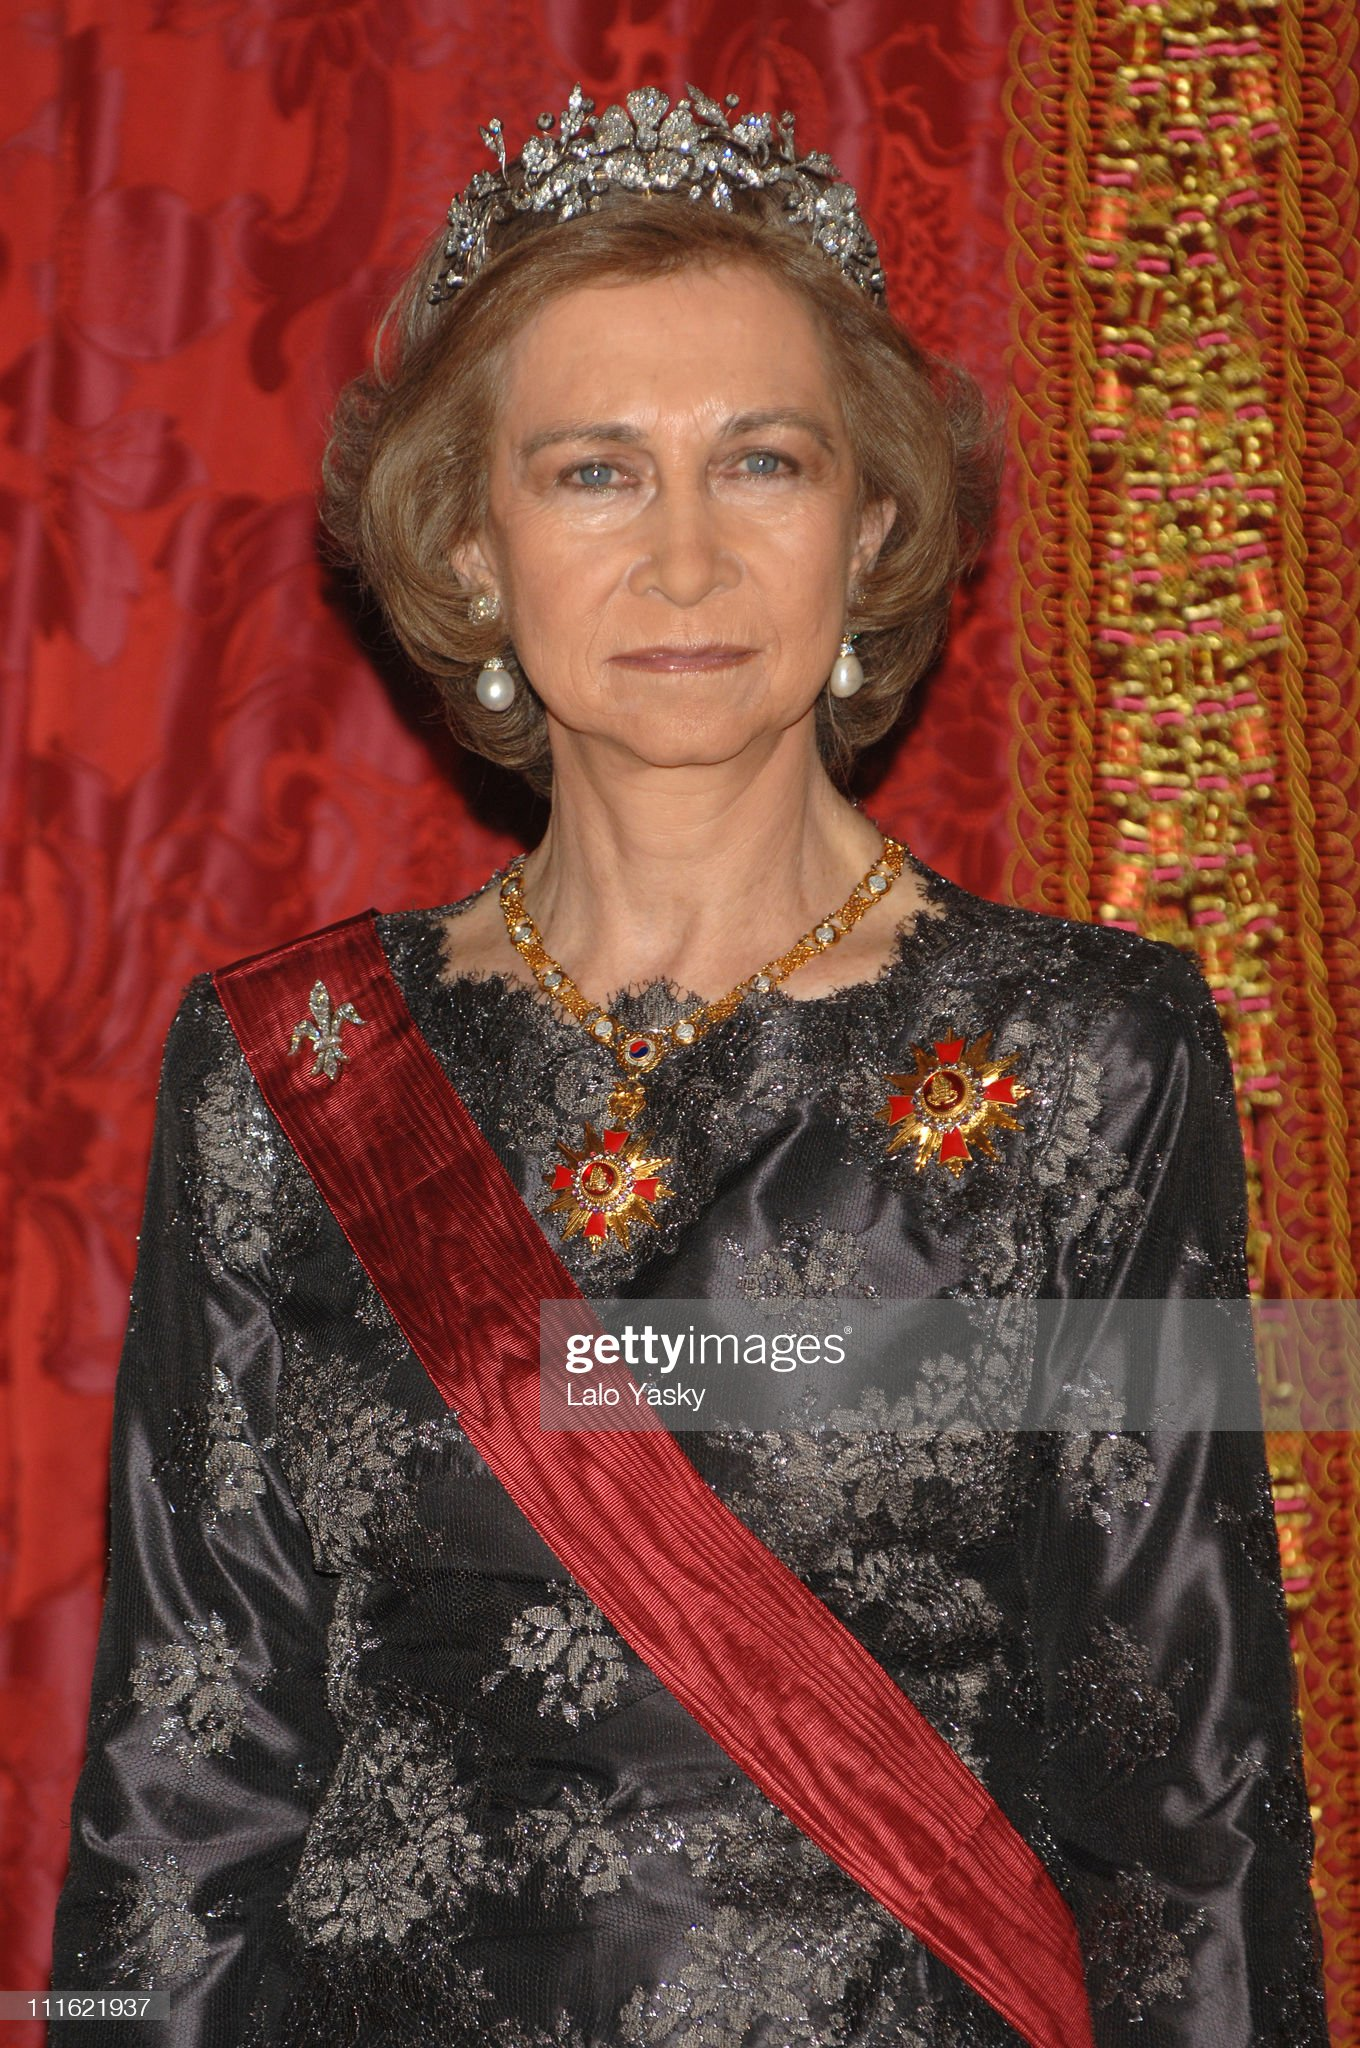 Spanish Royals Receive South Korean President - February 12, 2007 : News Photo